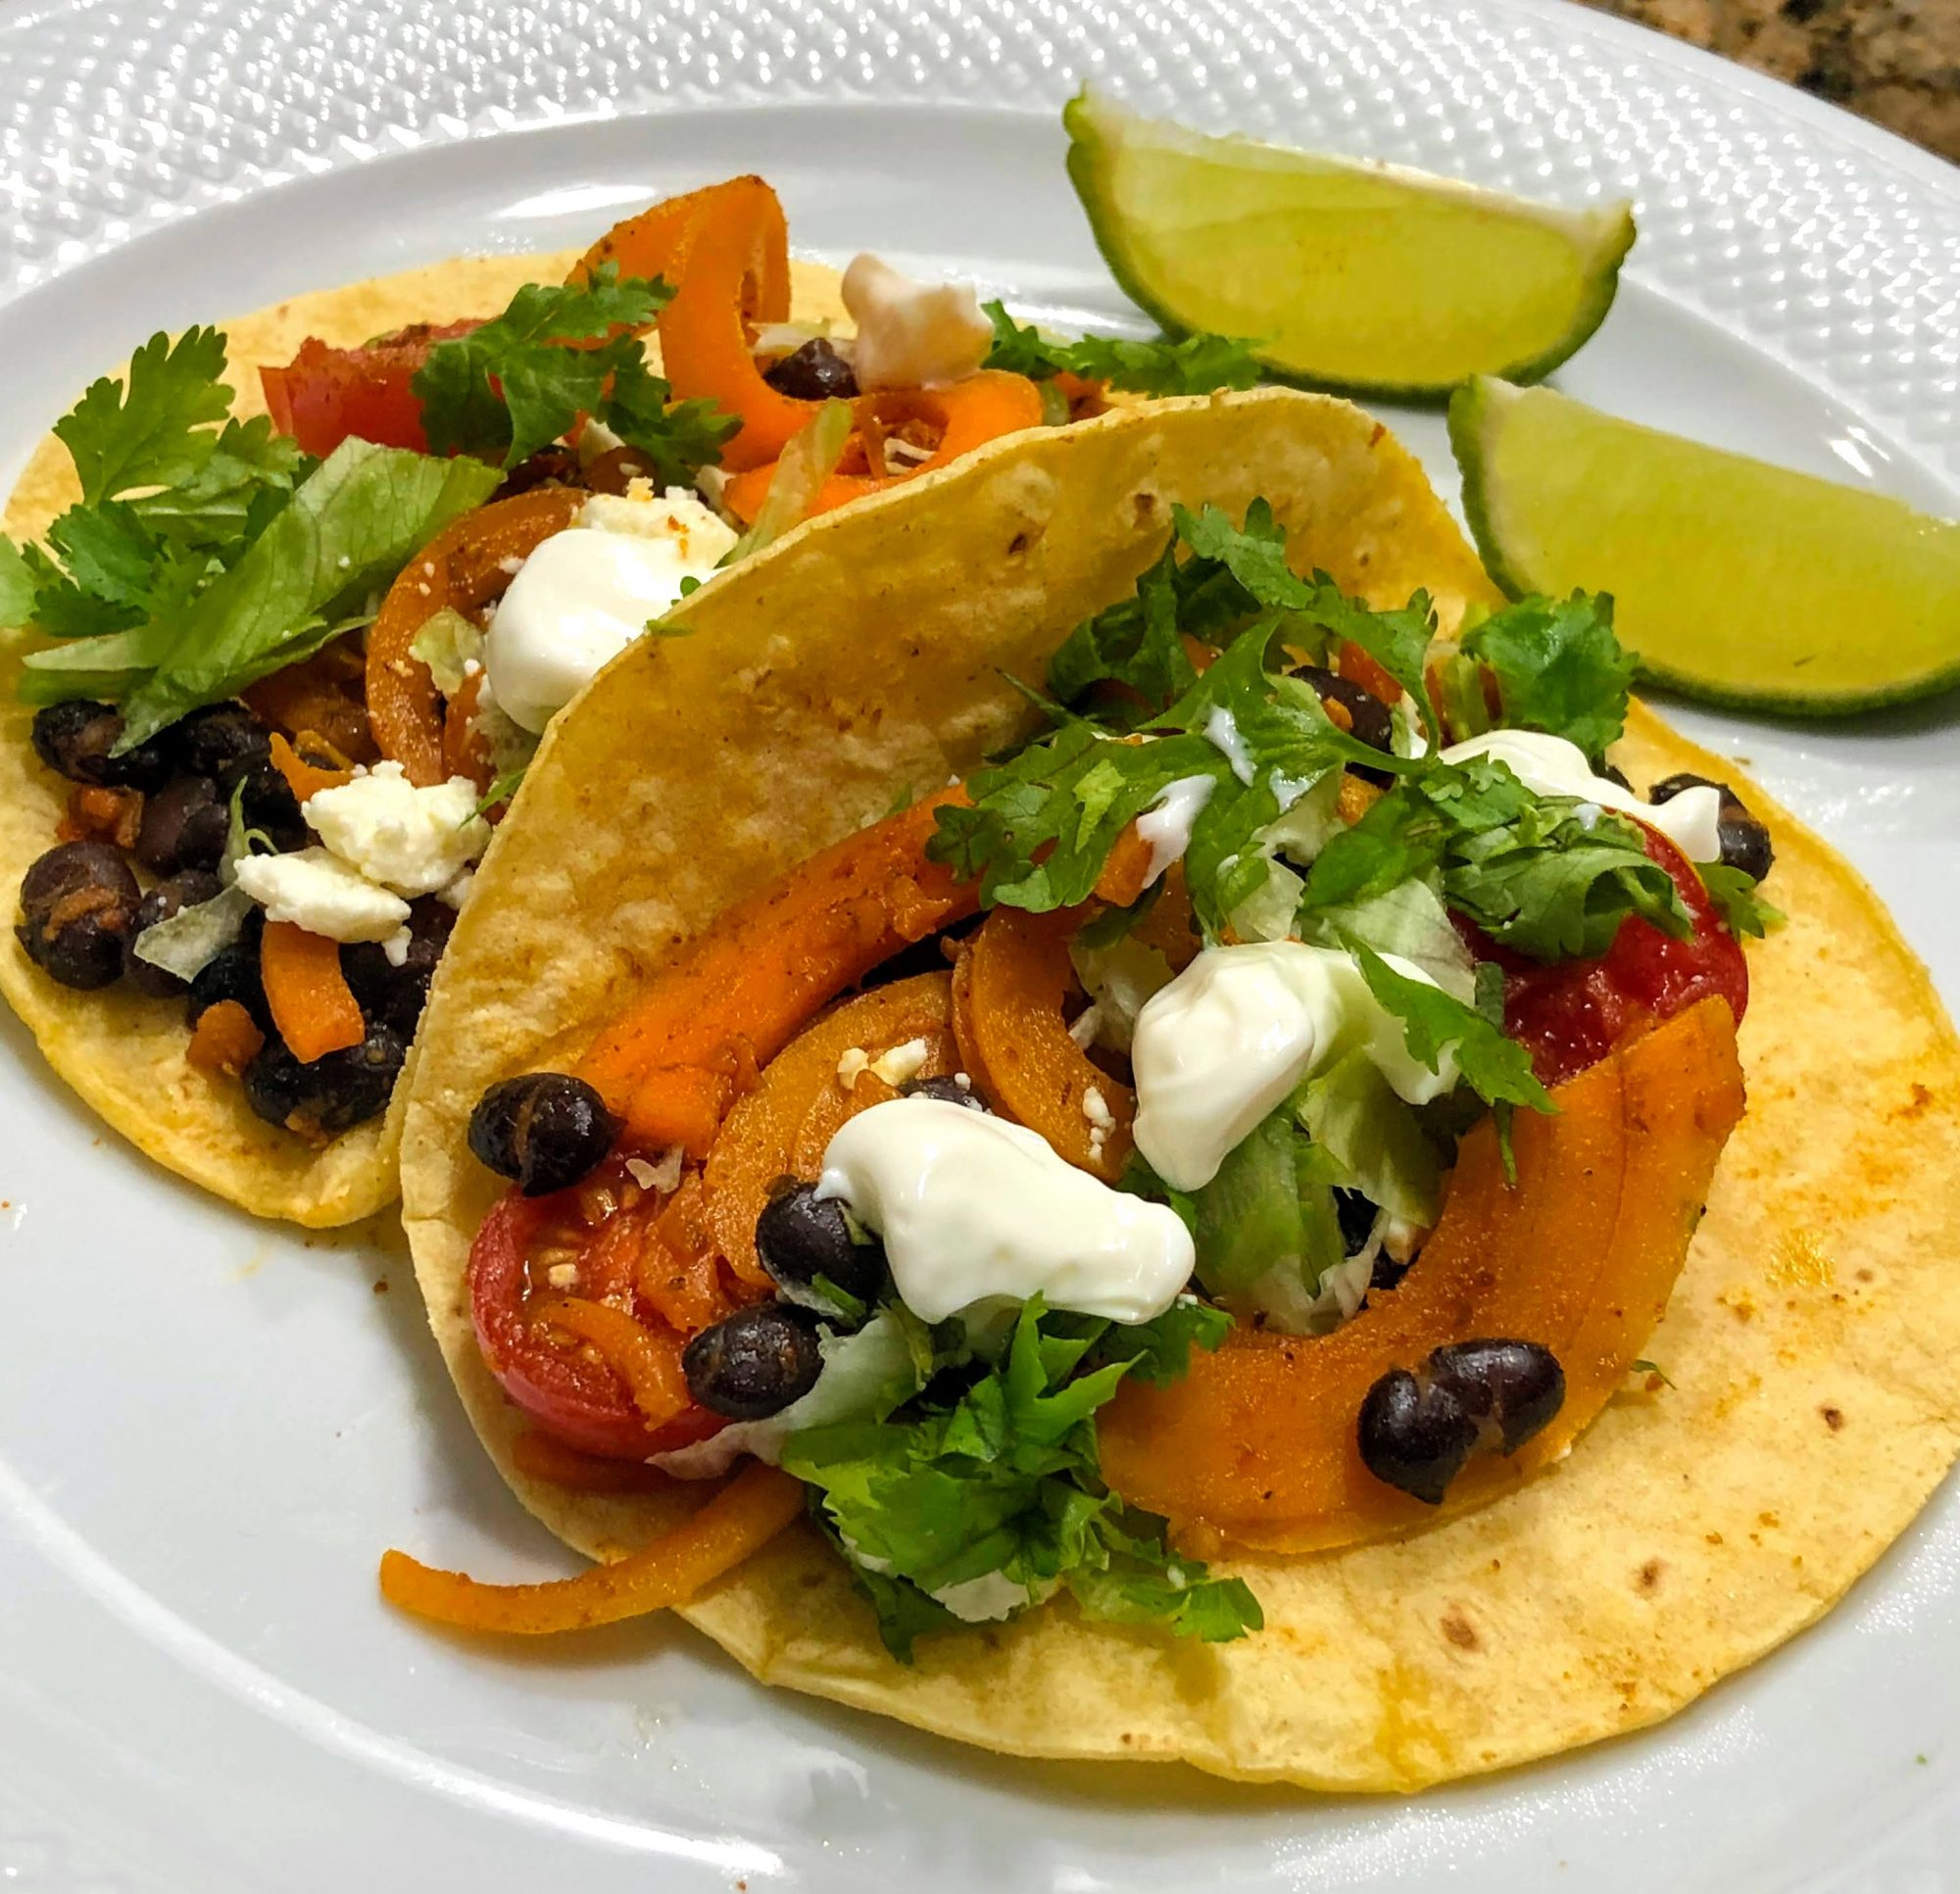 butternut squash and black beans with cheese and cilantro in taco shells